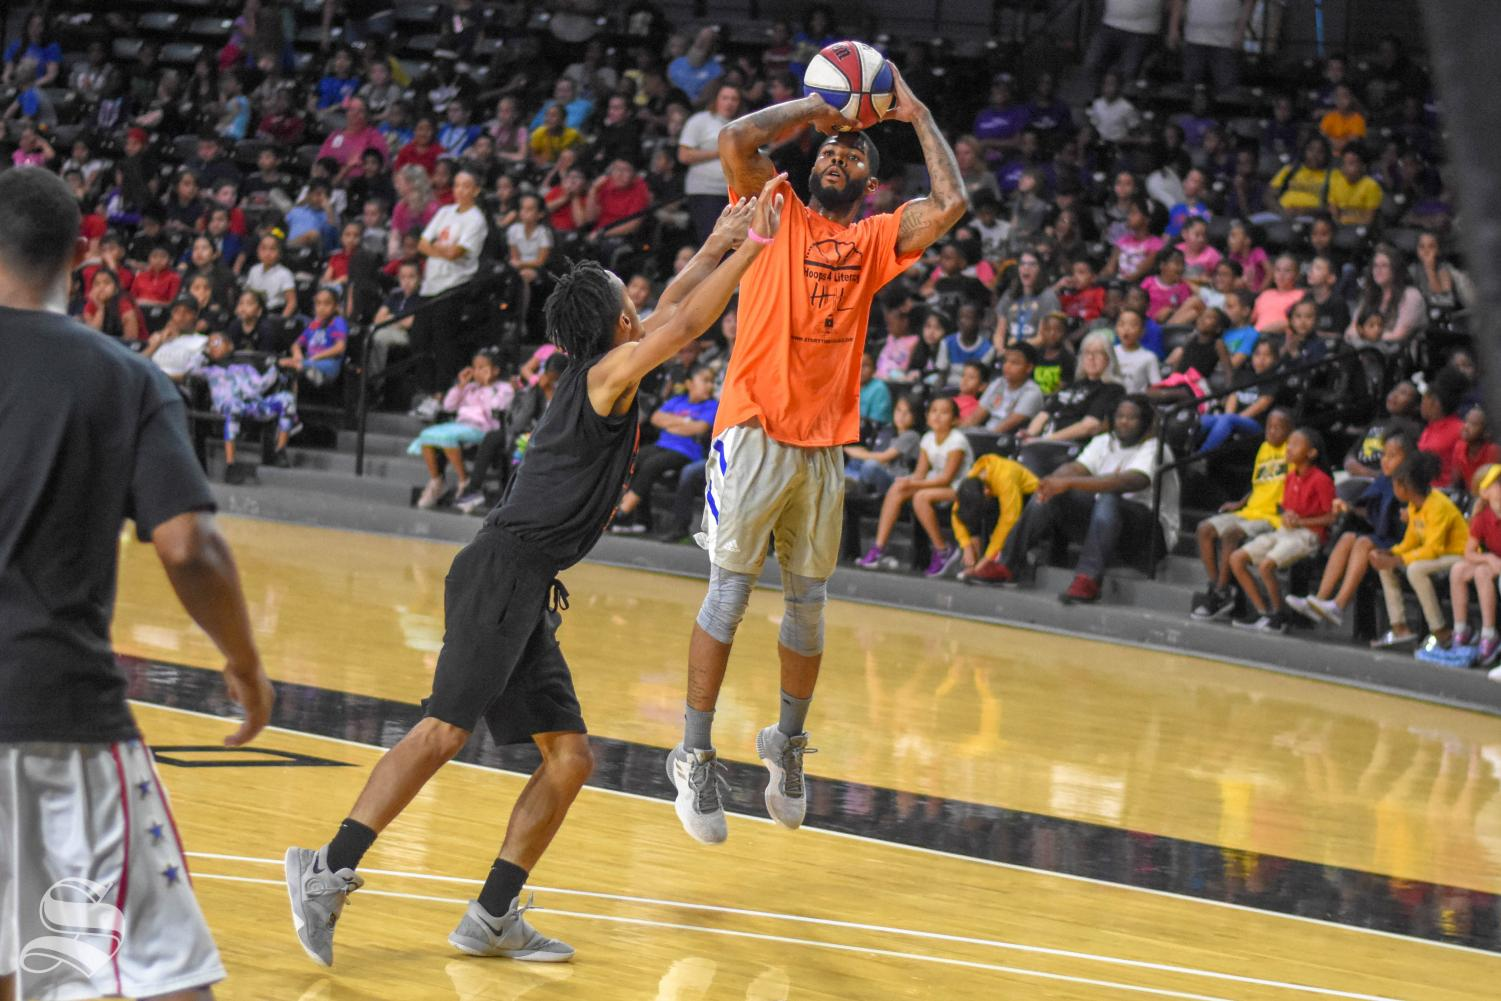 Kaelon Gary goes up for a three-point shot during the Hoops 4 Literacy game that was hosted by StoryTime Village and Wichita State on Friday inside Charles Koch Arena. The event hosted 1,200 local third graders.